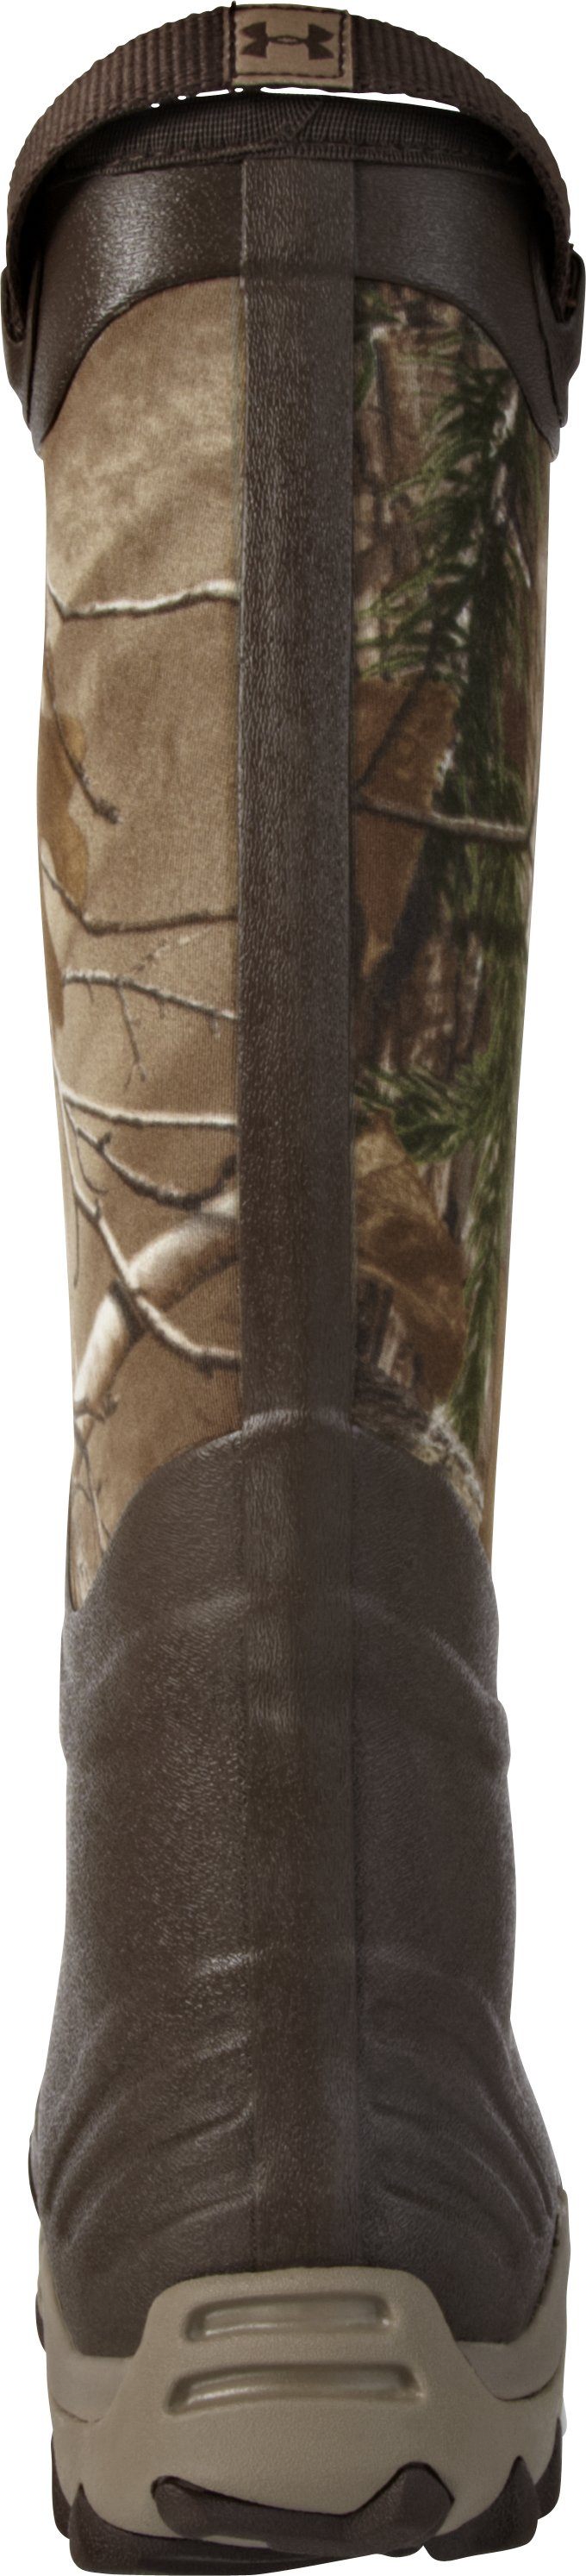 Men's UA H.A.W. Hunting Boots, REALTREE AP-XTRA,